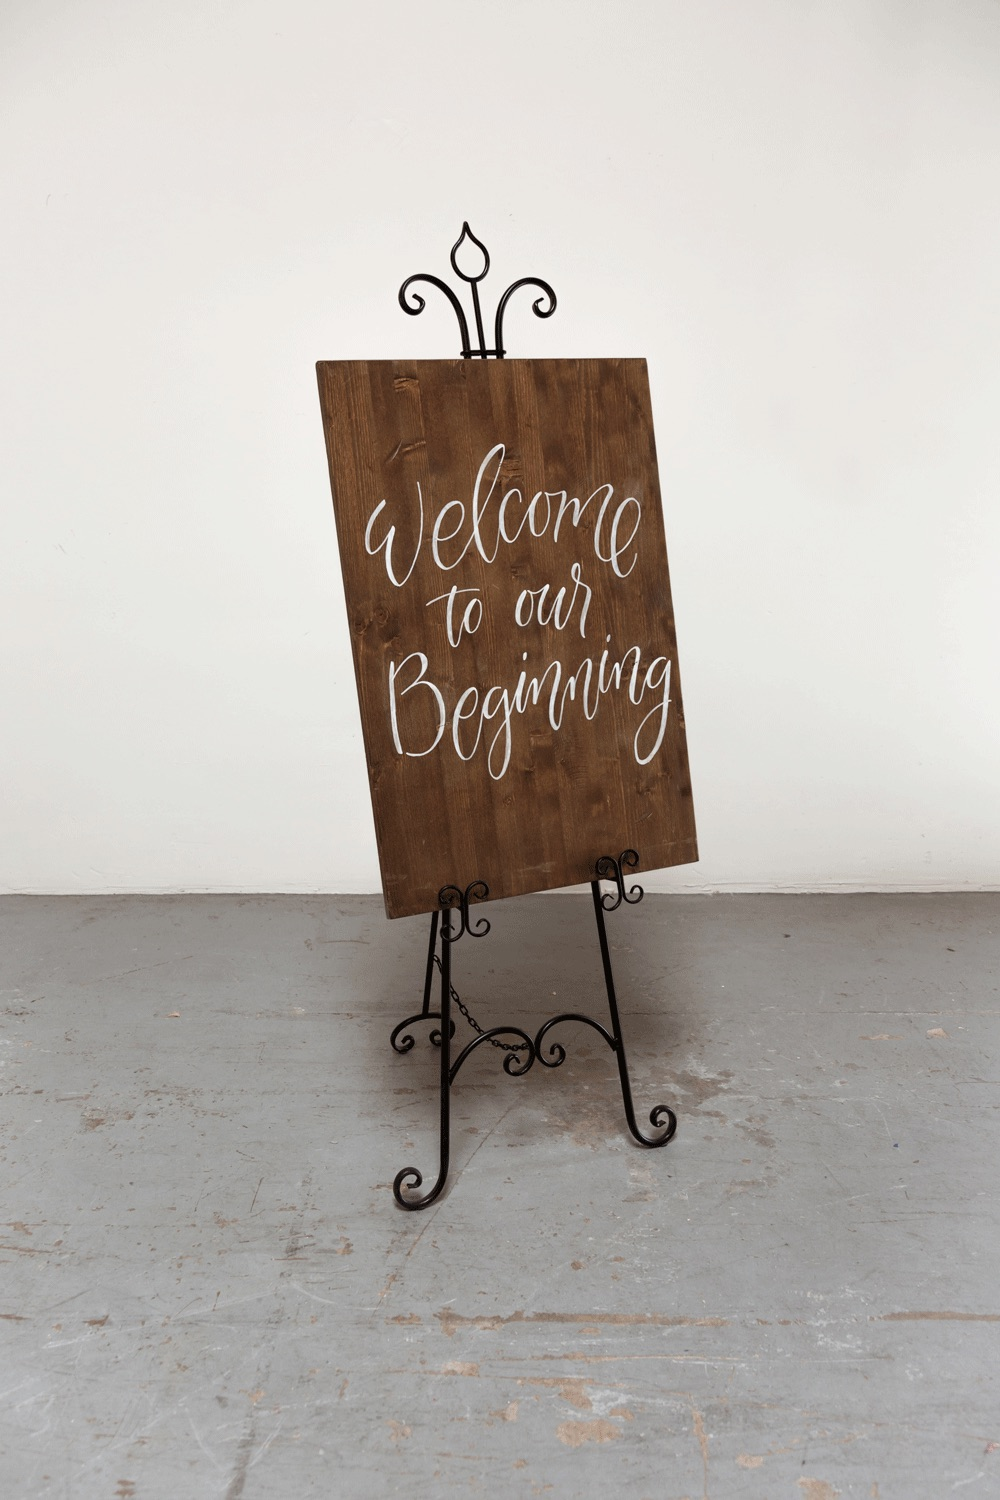 Welcome to our Beginning $50